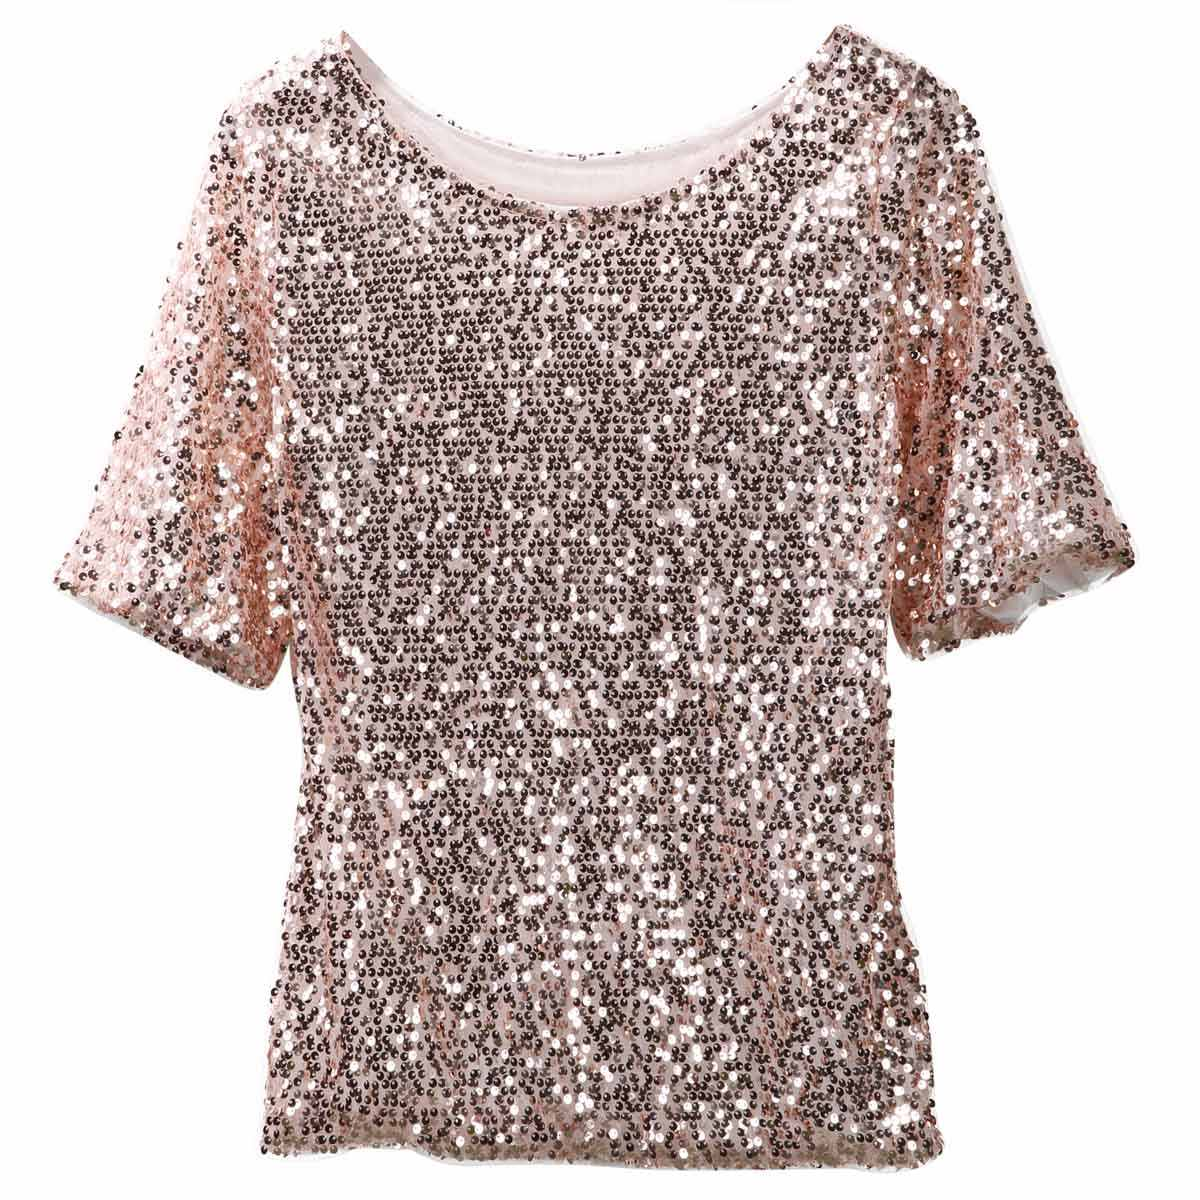 b2b03f80f7c Womens Lady Sequined Bling Shiny Casual Loose Shirt Off Shoulder female T- shirt for women